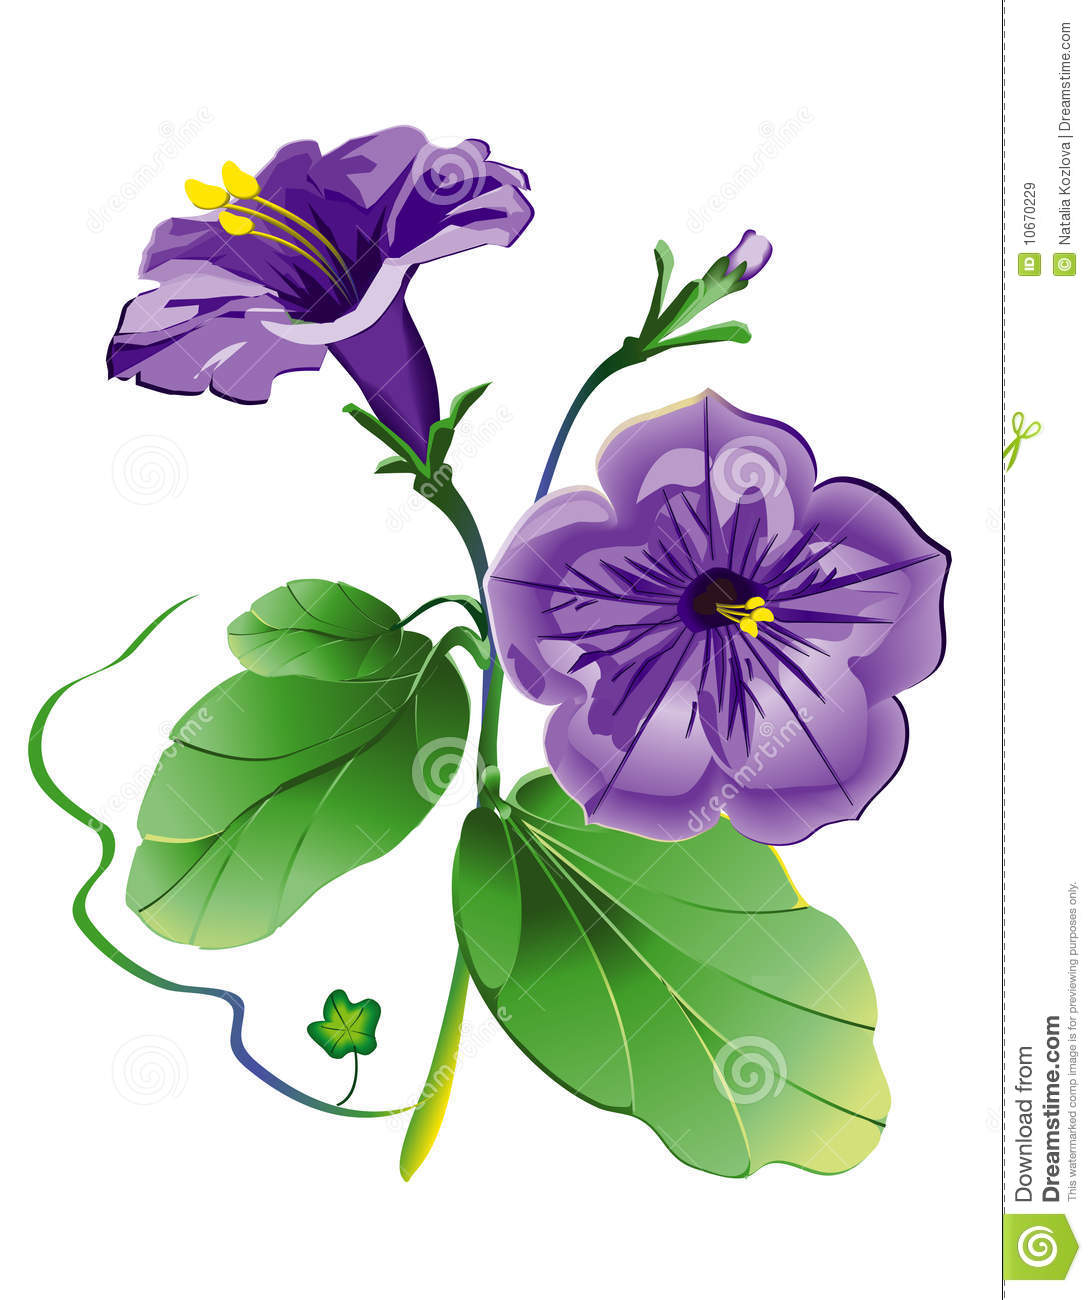 Petunia Flower, Model With EPS File Royalty Free Stock Images.